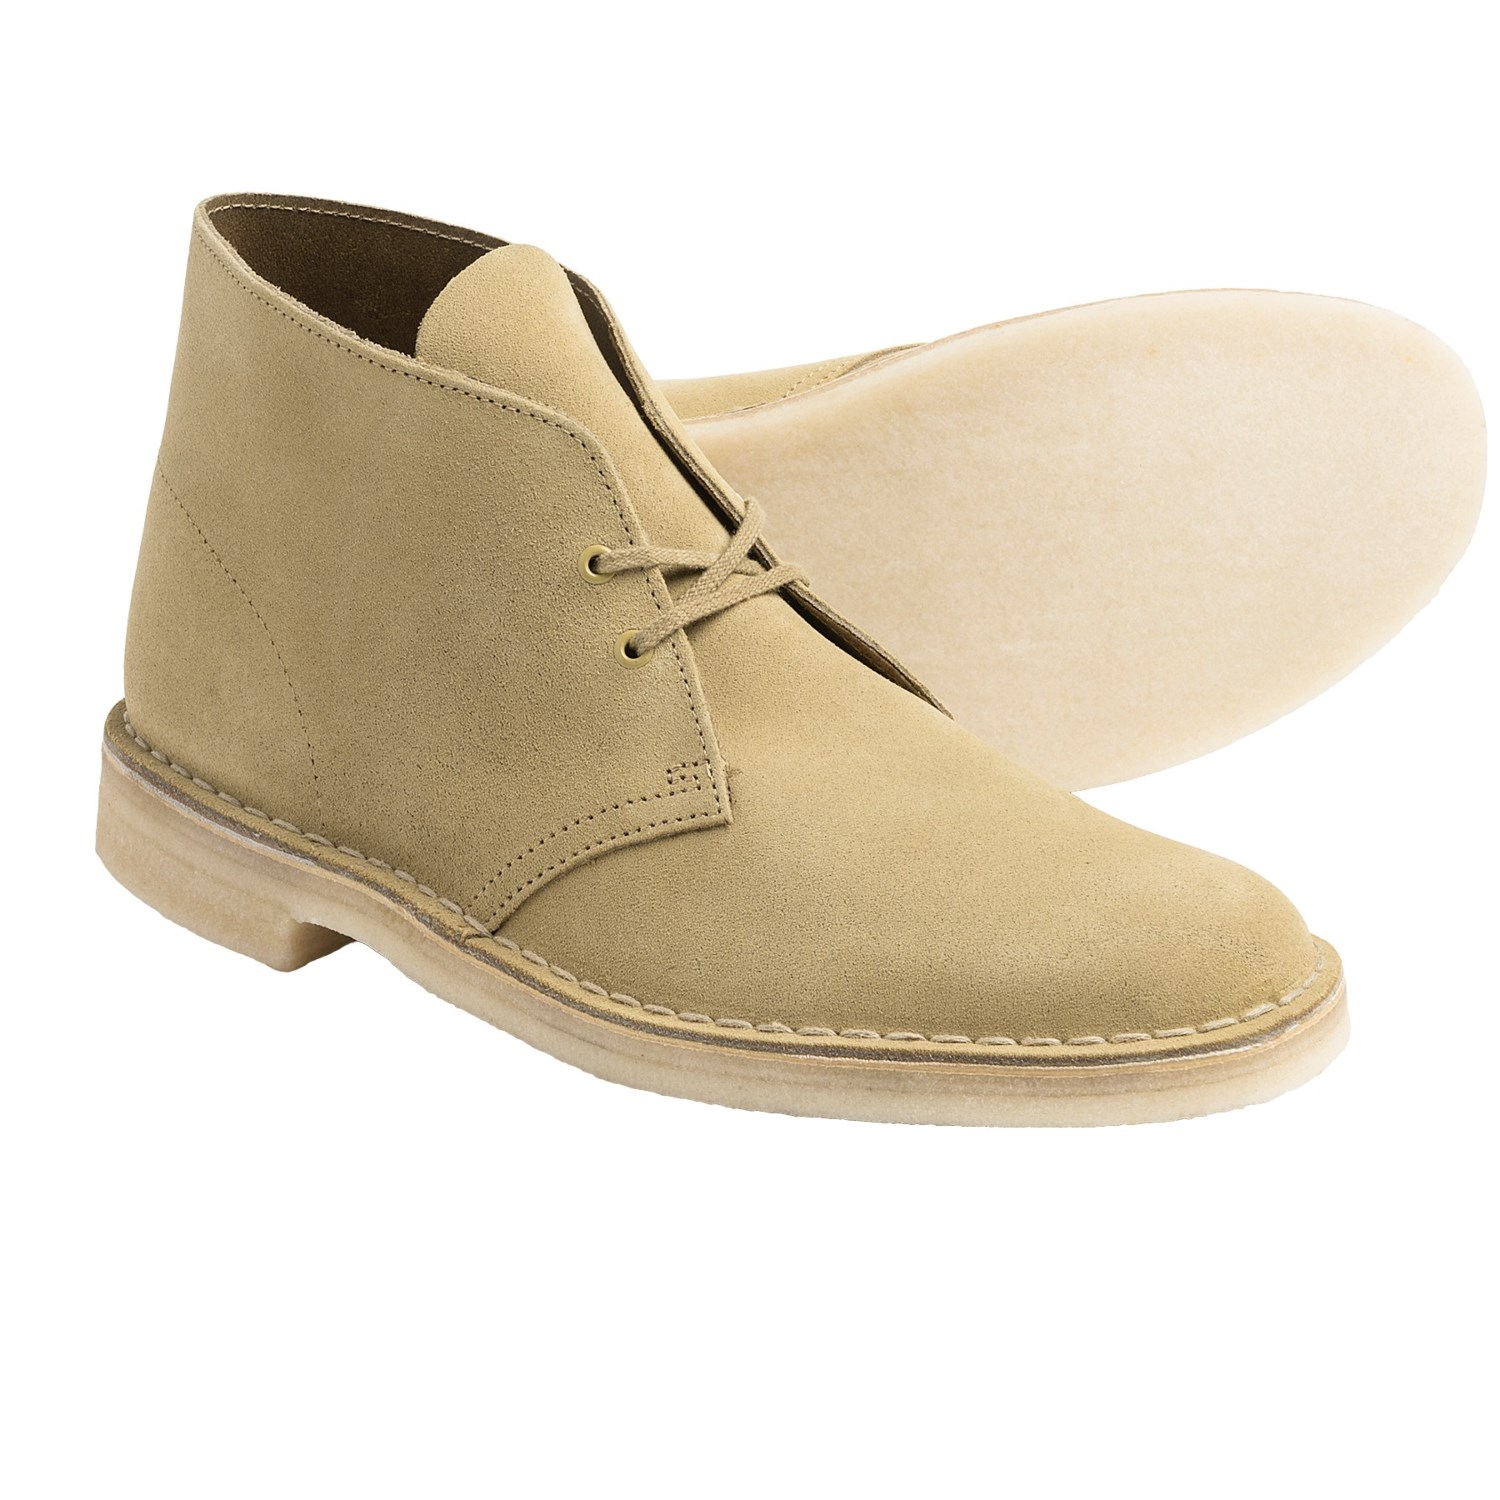 Clarks desert boots fashion 82